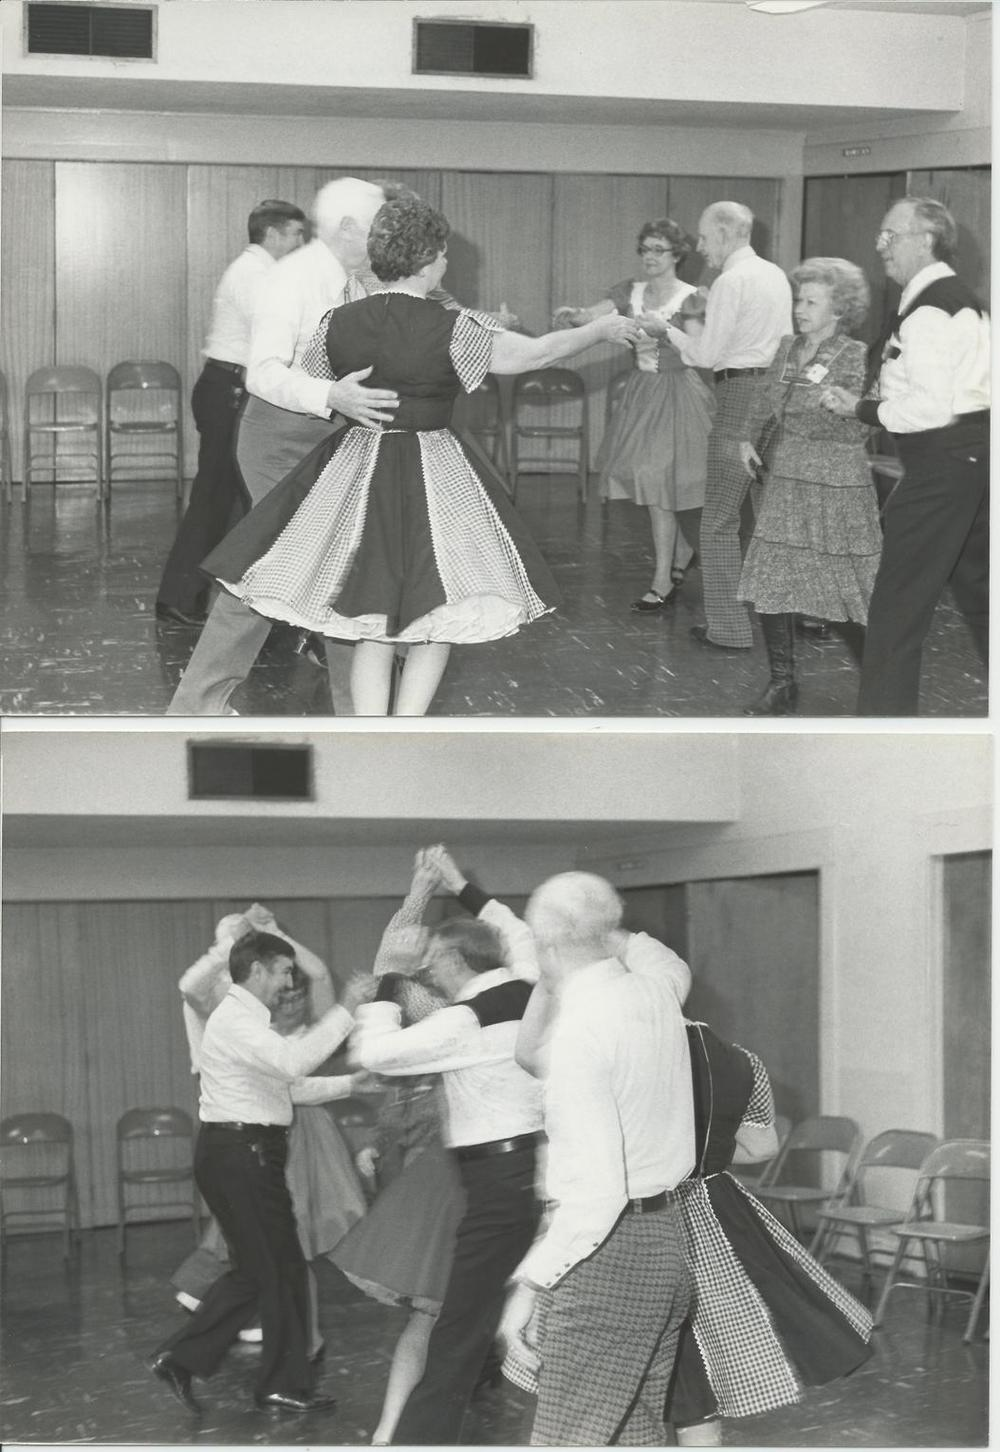 PMBC+Square+Dancing+Wilson,+Wood,++Fletcher,+Faile,+Russom+c.+1970.jpg